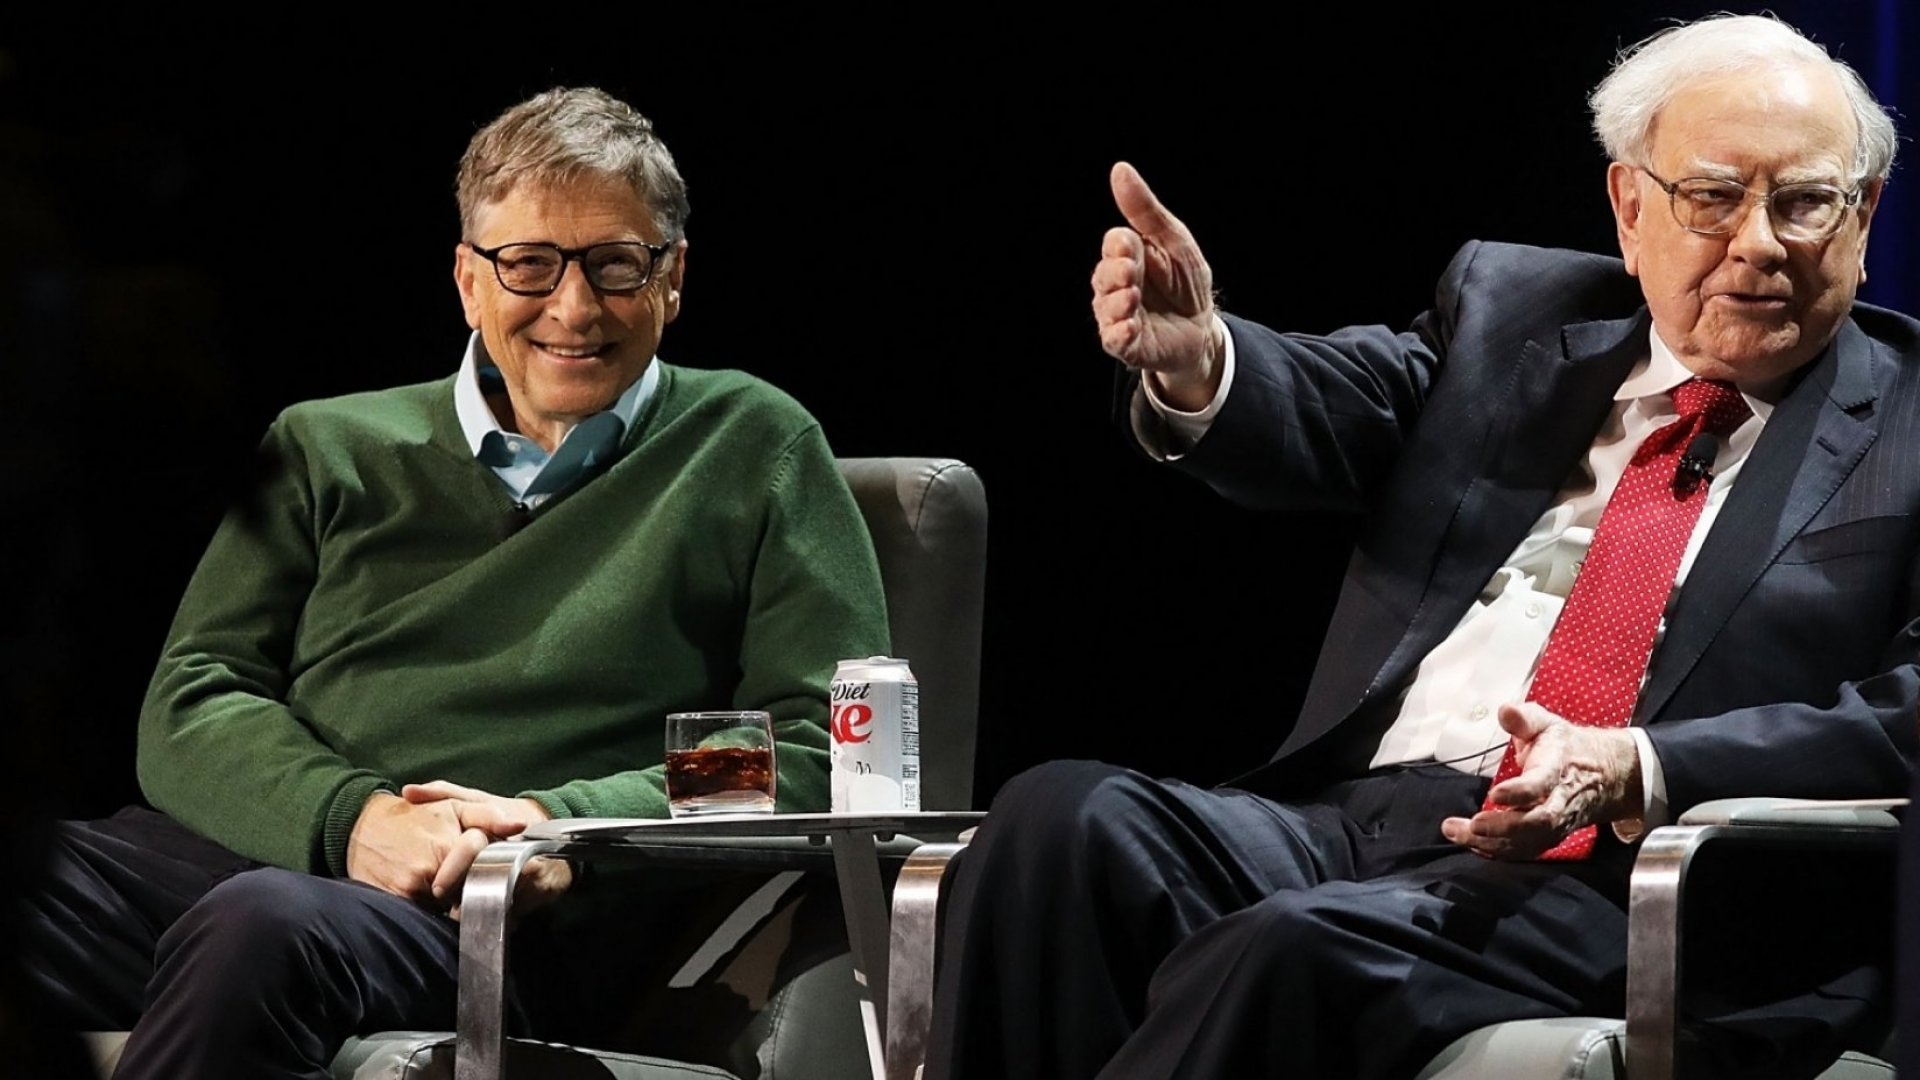 Bill Gates and Warren Buffett speaking to students at Columbia University.